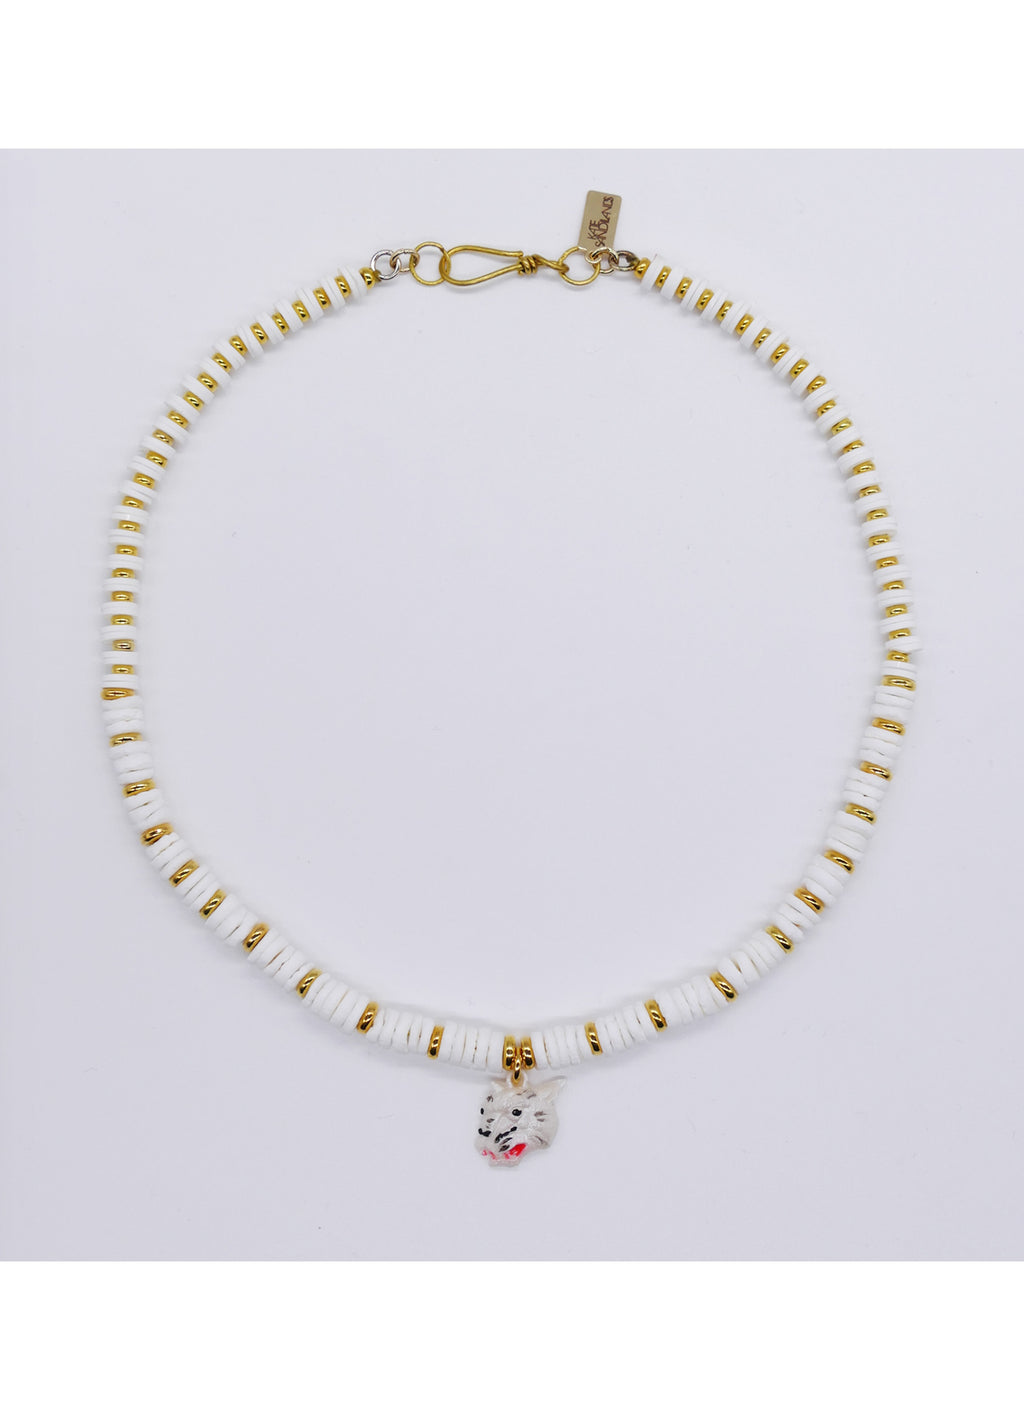 Tiger collar necklace